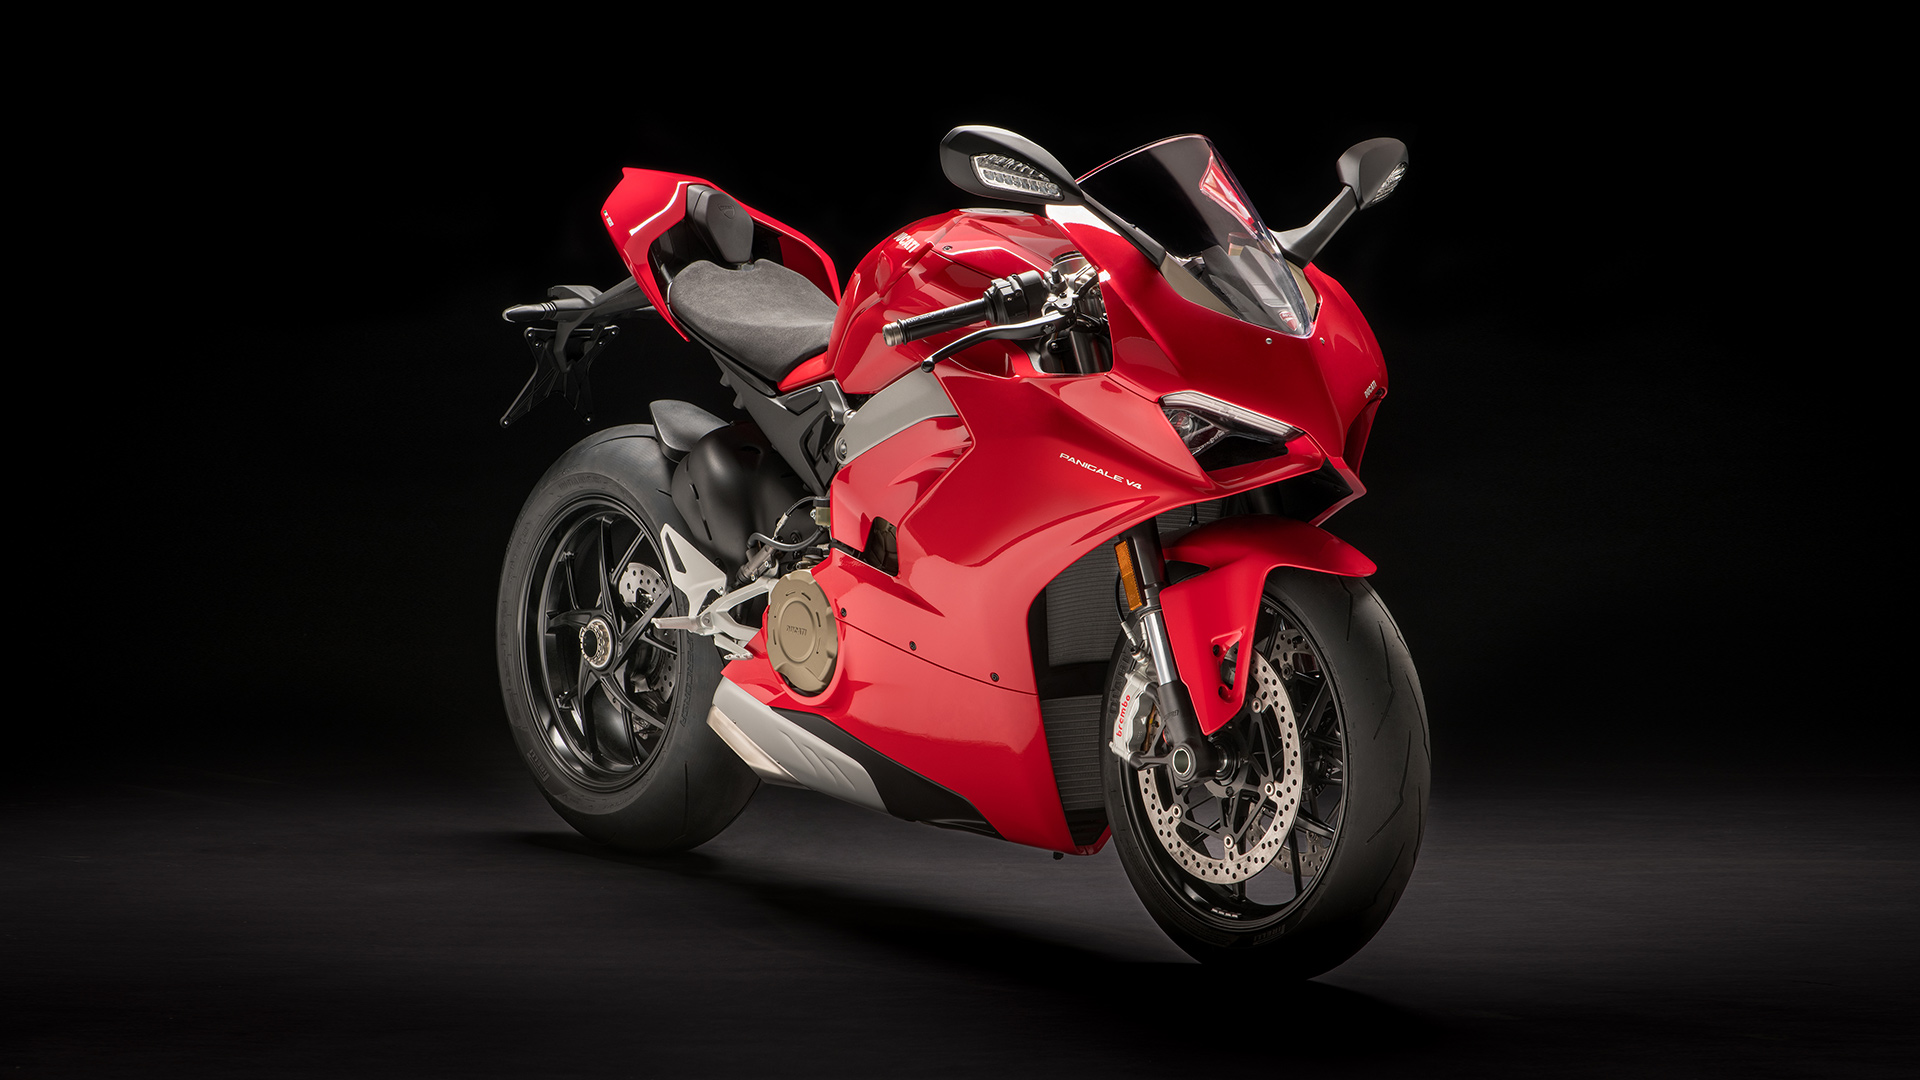 Ducati Panigale 1200cc >> Ducati Superbike Panigale No Room For Compromise